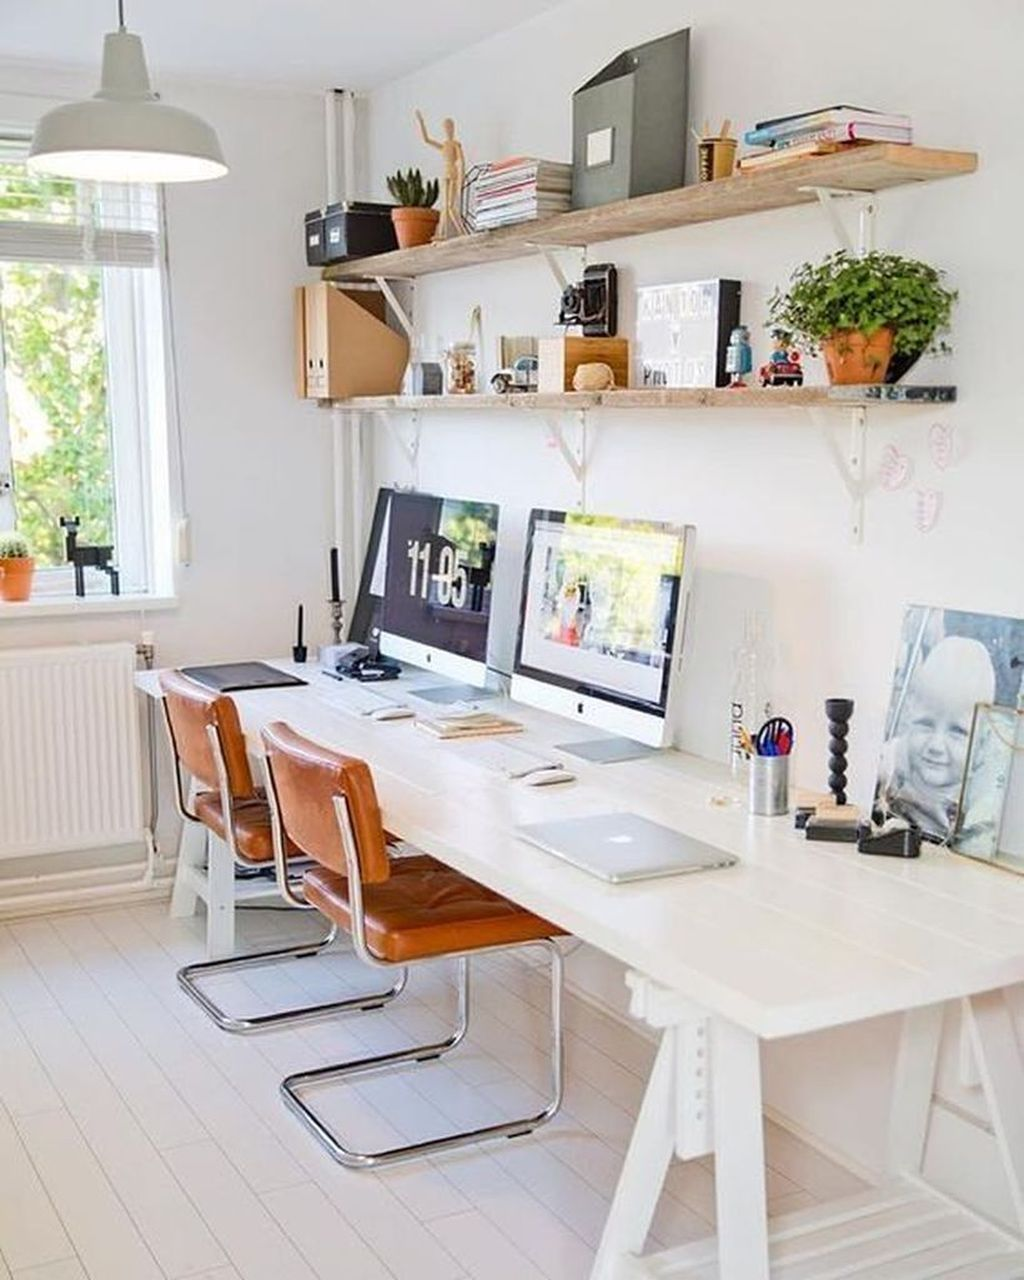 Wonderful Workspace Inspiration That You Have To Try 16 1